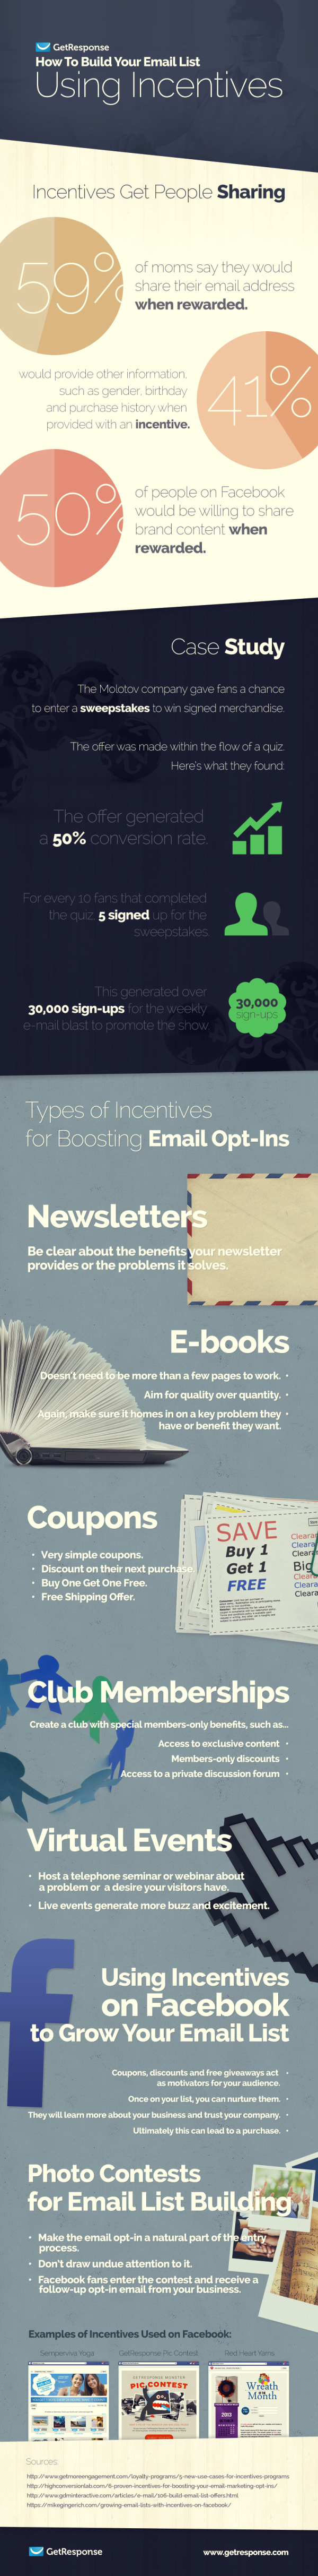 How to Build Your Email List Using Incentives - Infographic